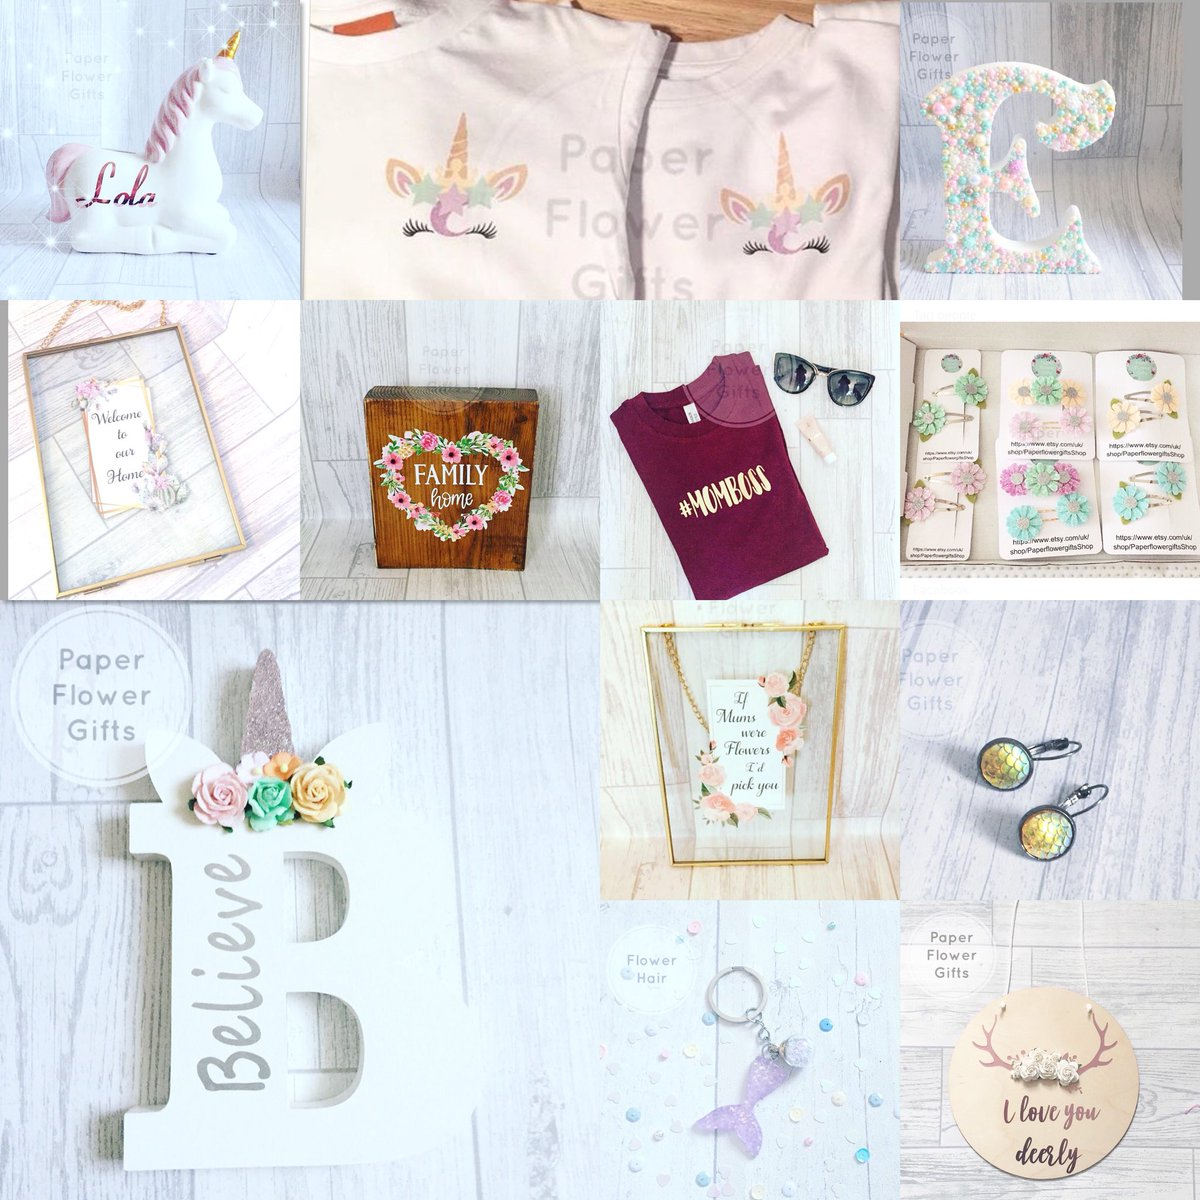 Various gifts available in store  https://www. etsy.com/uk/shop/Paperf lowergiftsShop &nbsp; …  #wnukrt #gifthour  #womaninbizhour #gifts #etsyshop<br>http://pic.twitter.com/dCpdq3Xdm3